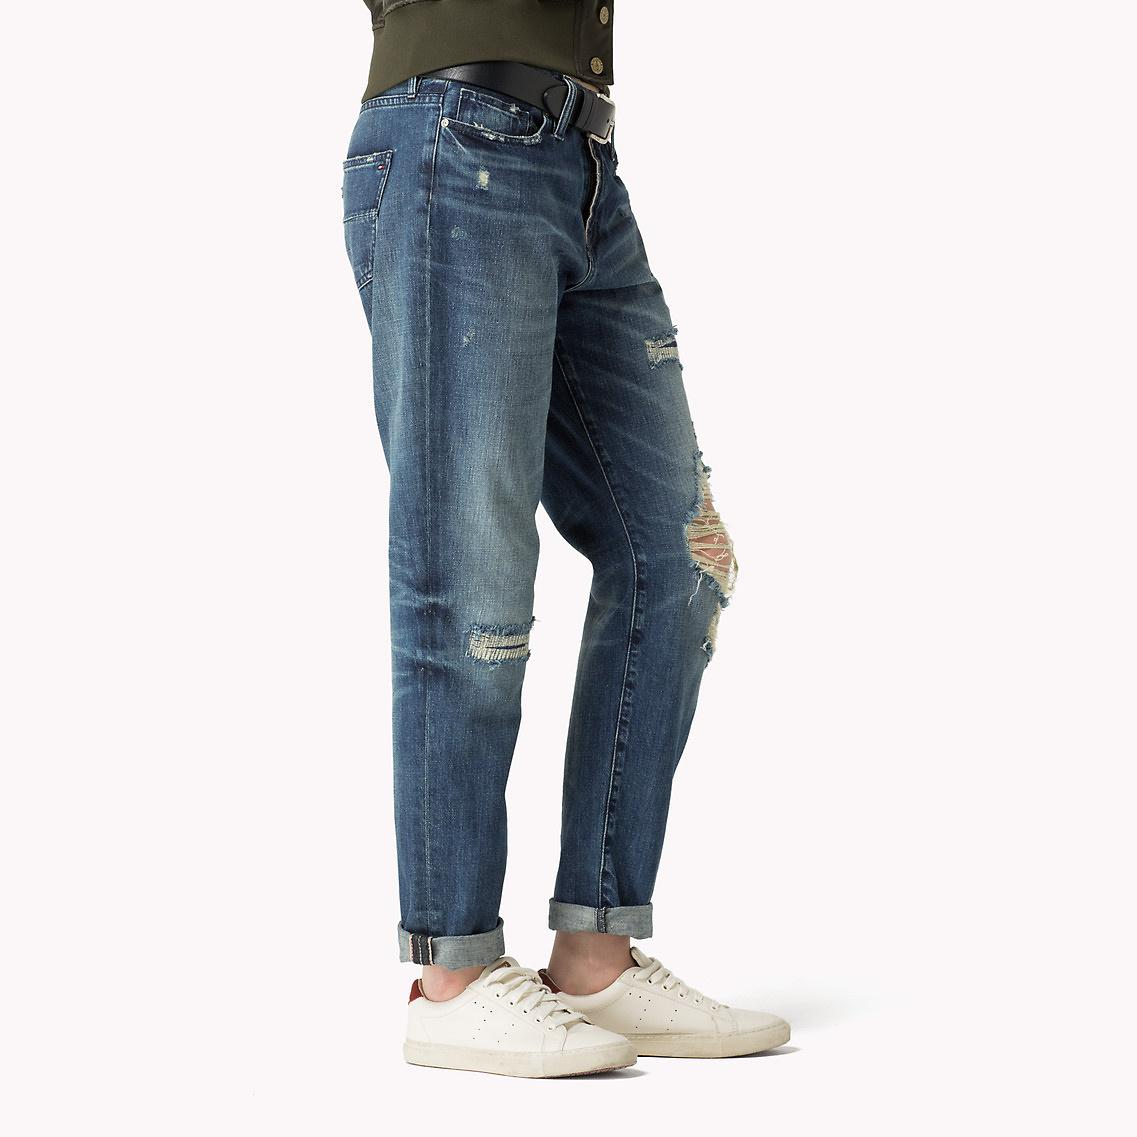 543f53ac87ed Tommy Hilfiger Girlfriend Fit Jeans in Blue for Men - Lyst